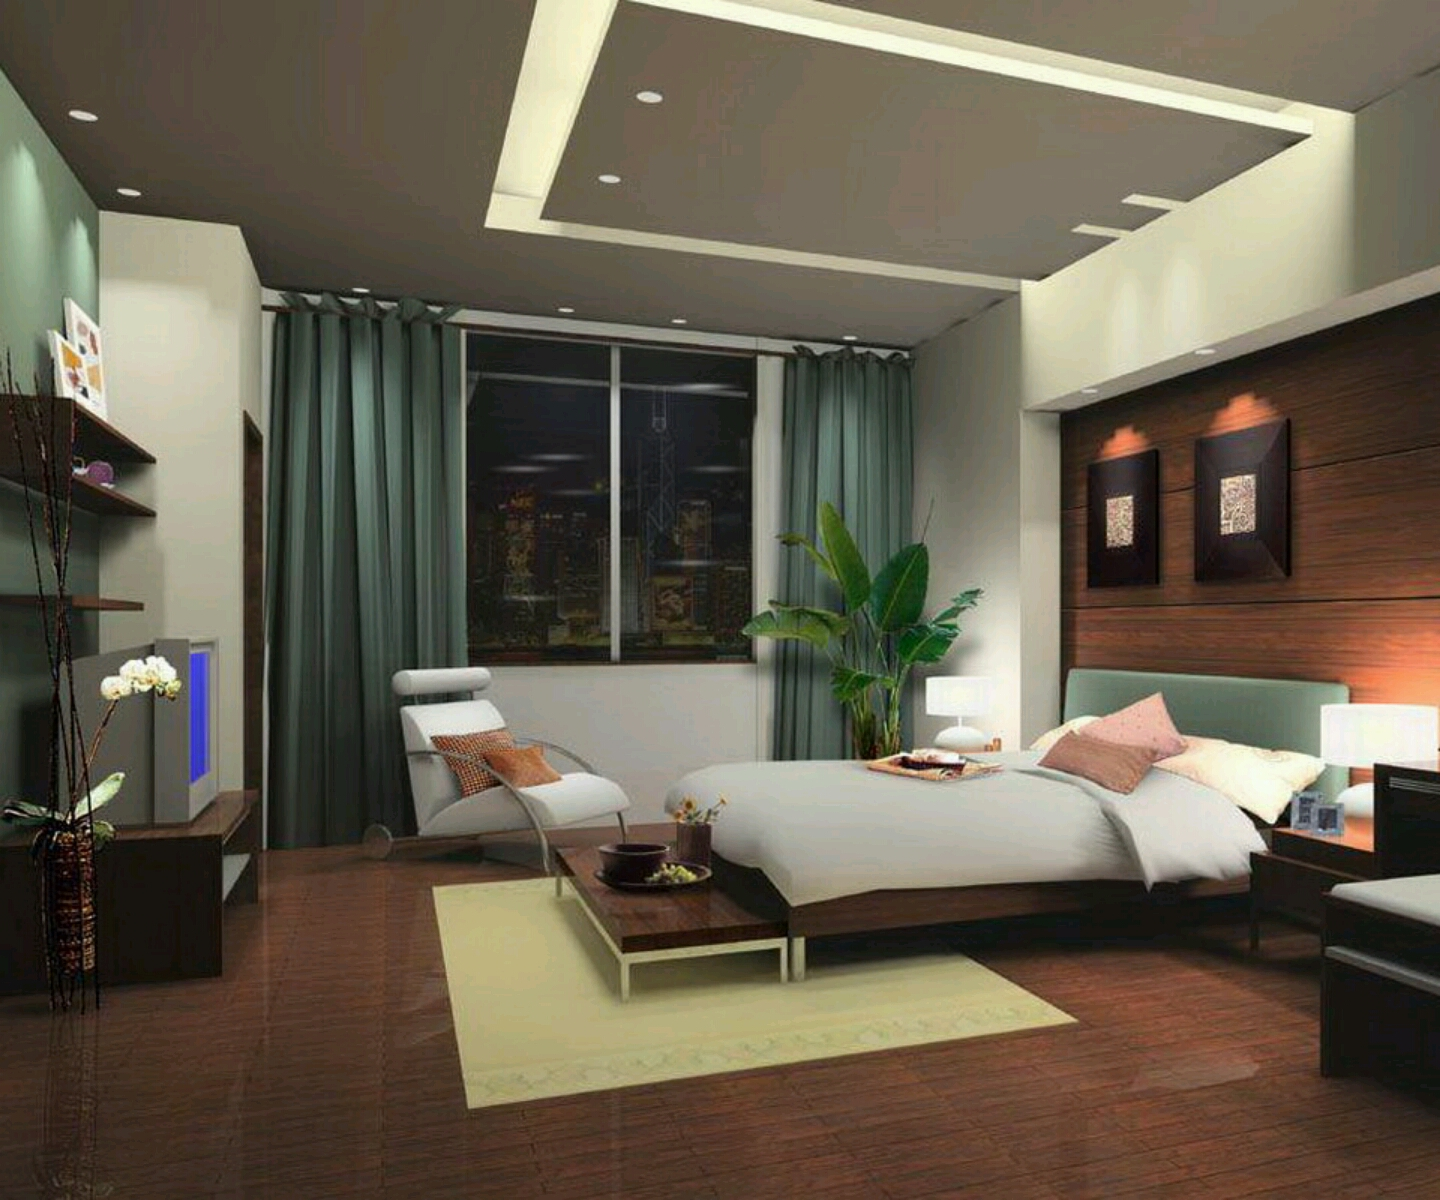 New home designs latest modern bedrooms designs best ideas for Modern bedroom designs